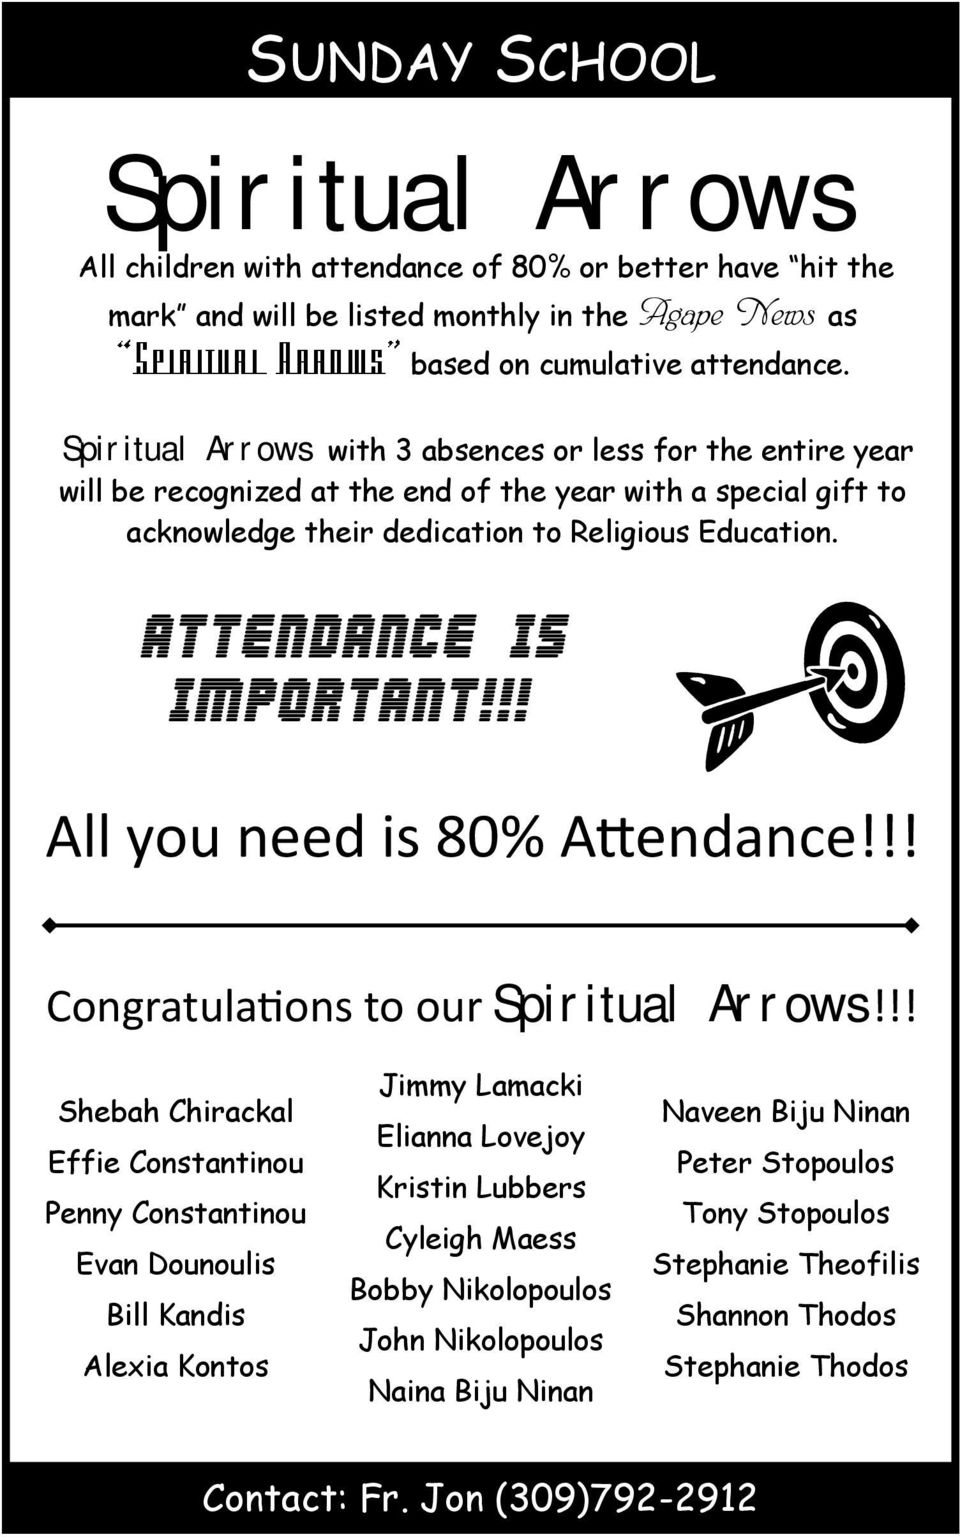 Attendance is Important!!! All you need is 80% Attendance!!! Congratulations to our Spiritual Arrows!